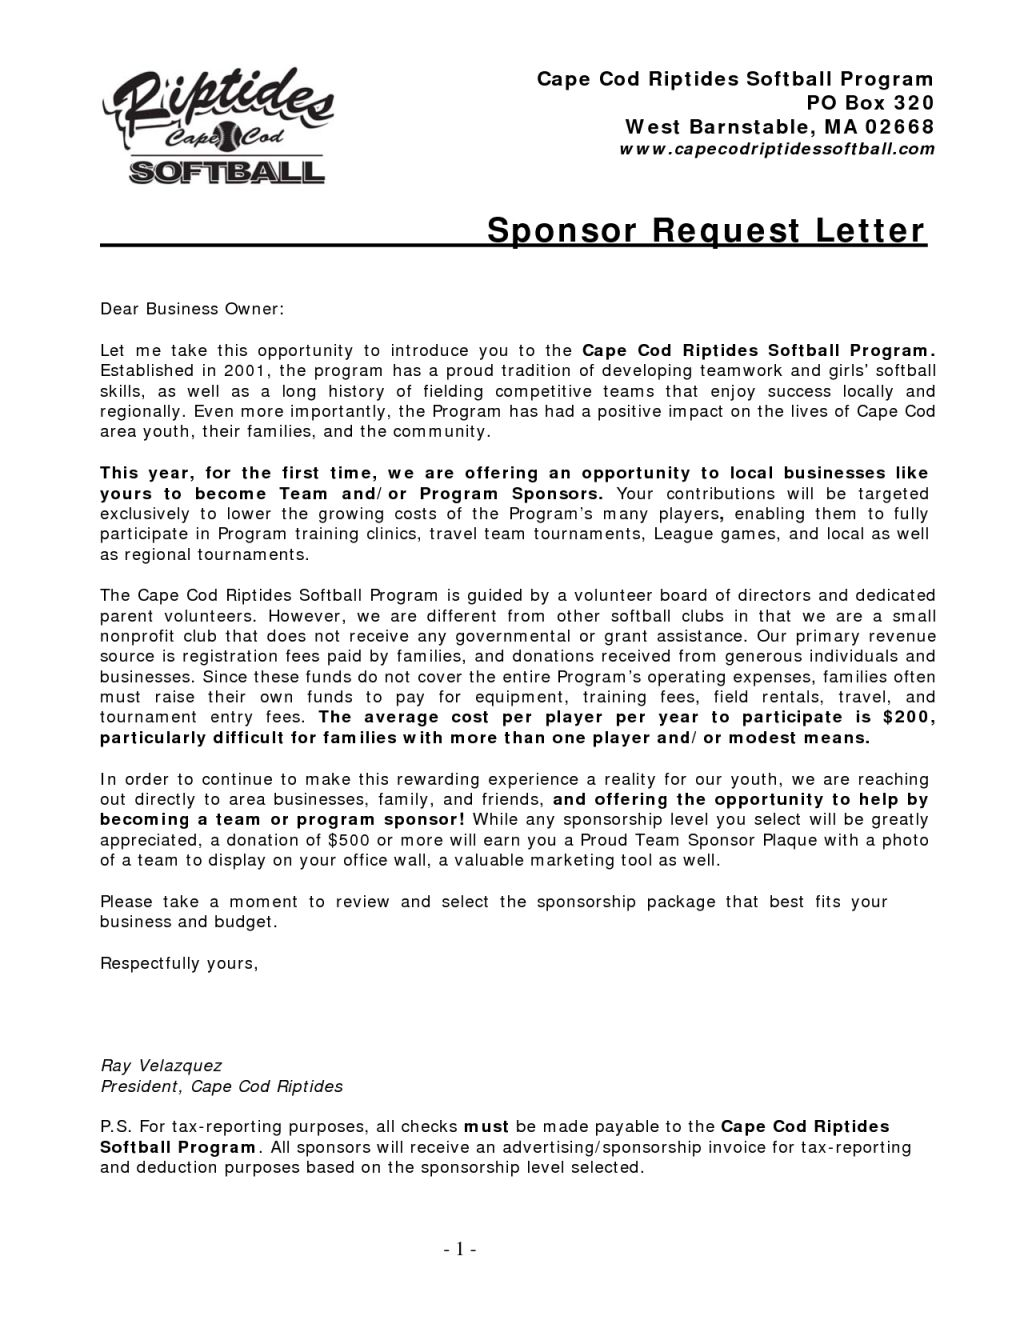 Baseball Sponsorship Letter Template - Well Liked Sample Sponsor Letter Yy55 – Documentaries for Change